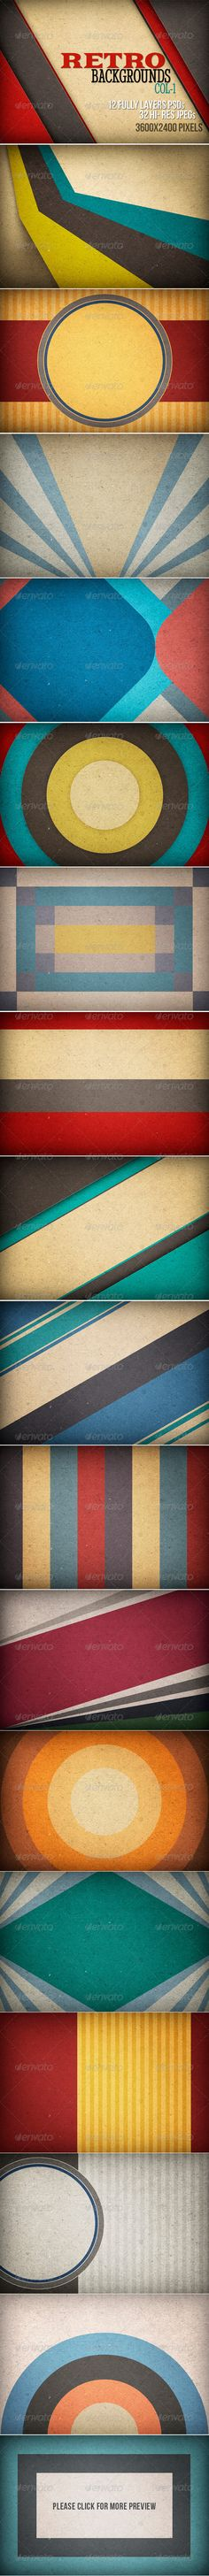 Retro Backgrounds 3600×2400 px, 300 dpi #design Download: http://graphicriver.net/item/retro-backgrounds/5666344?ref=ksioks